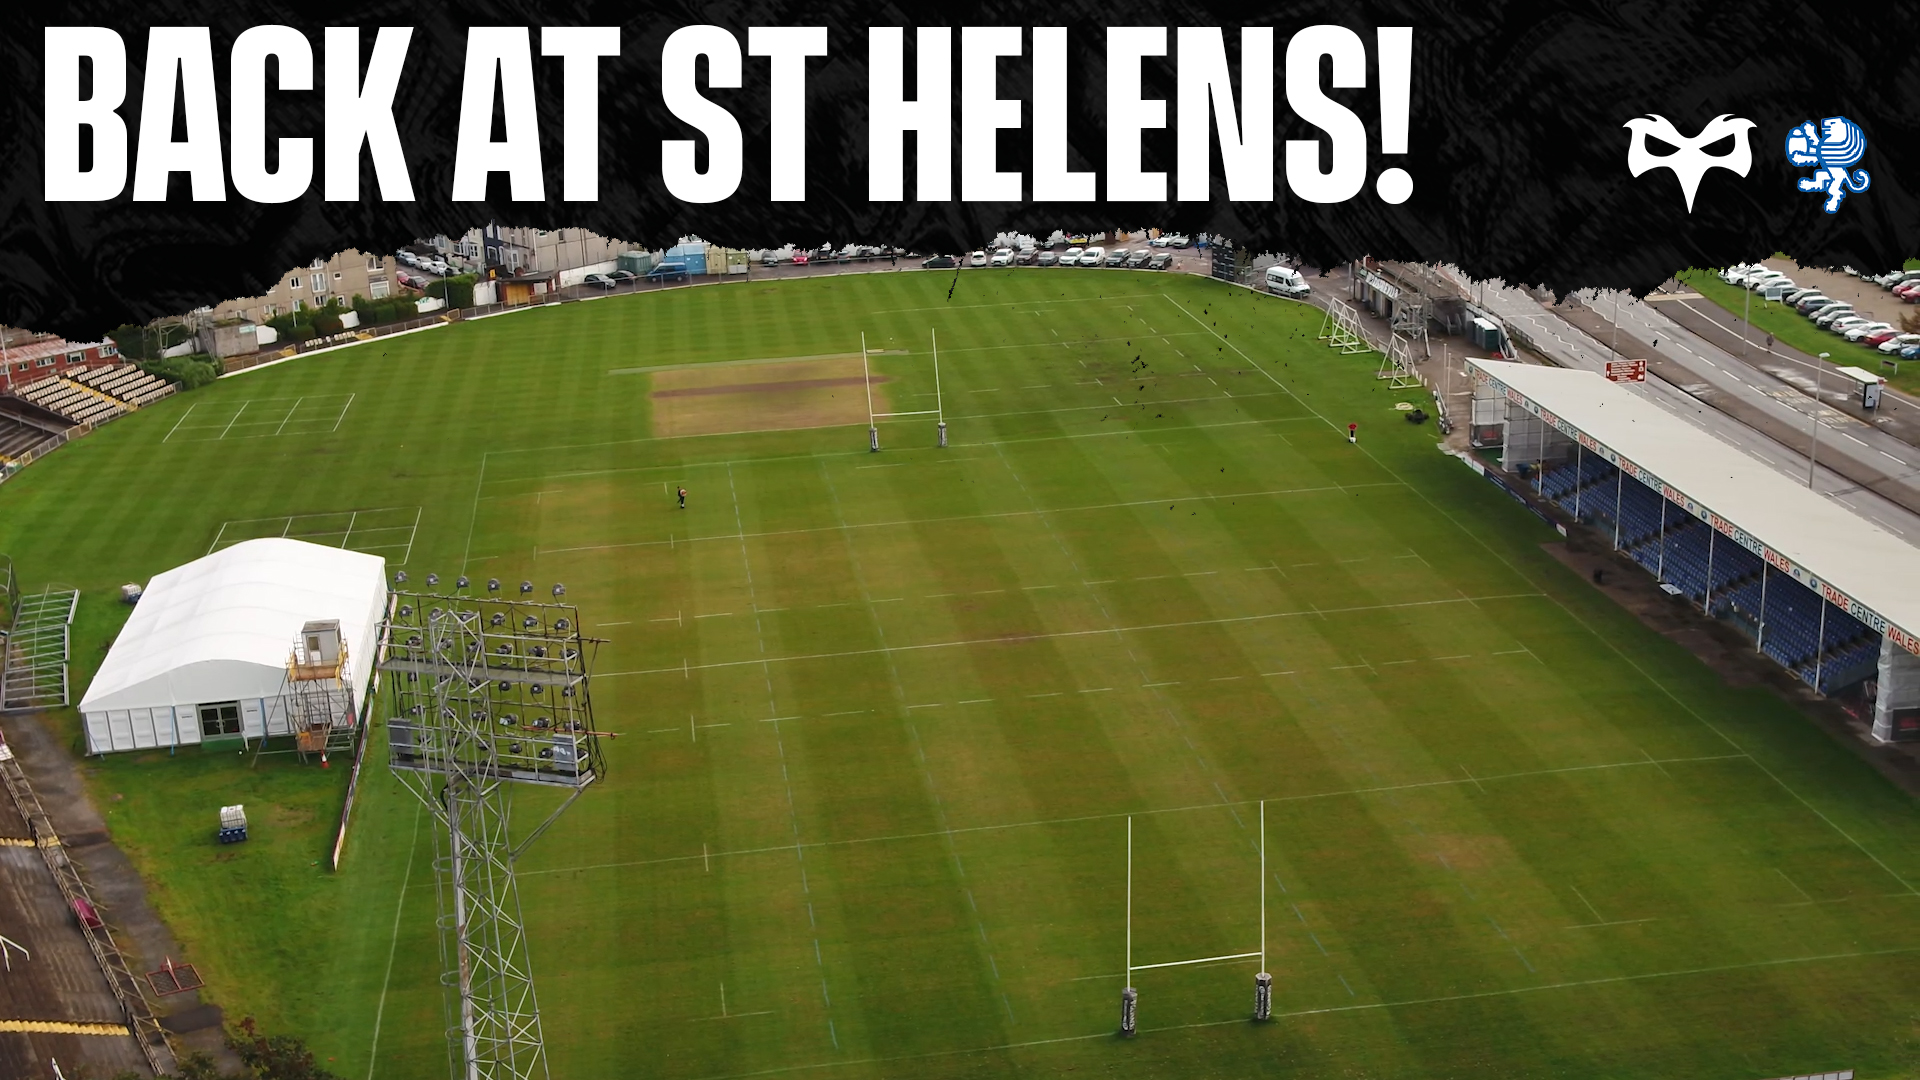 We're Back At St Helens...